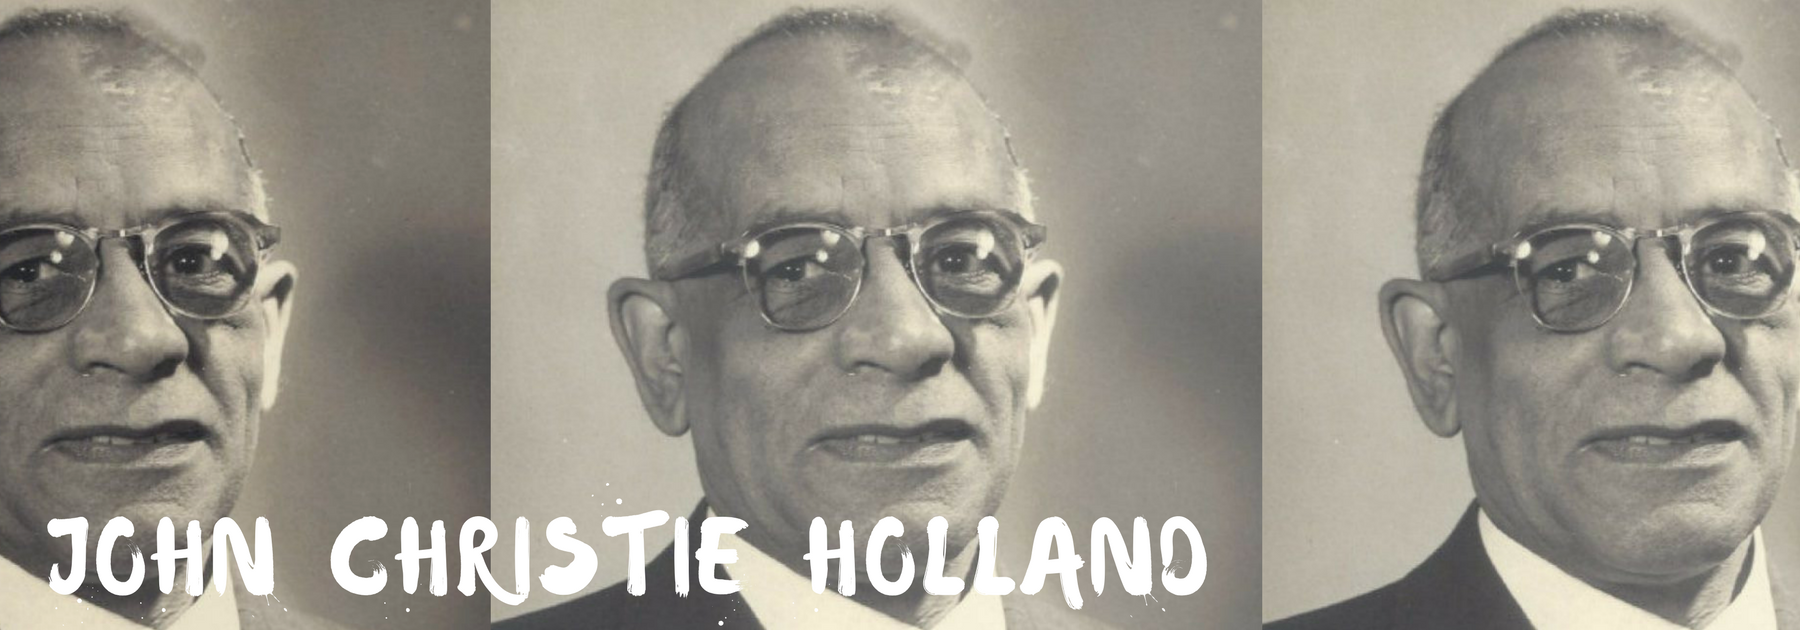 John Christie Holland